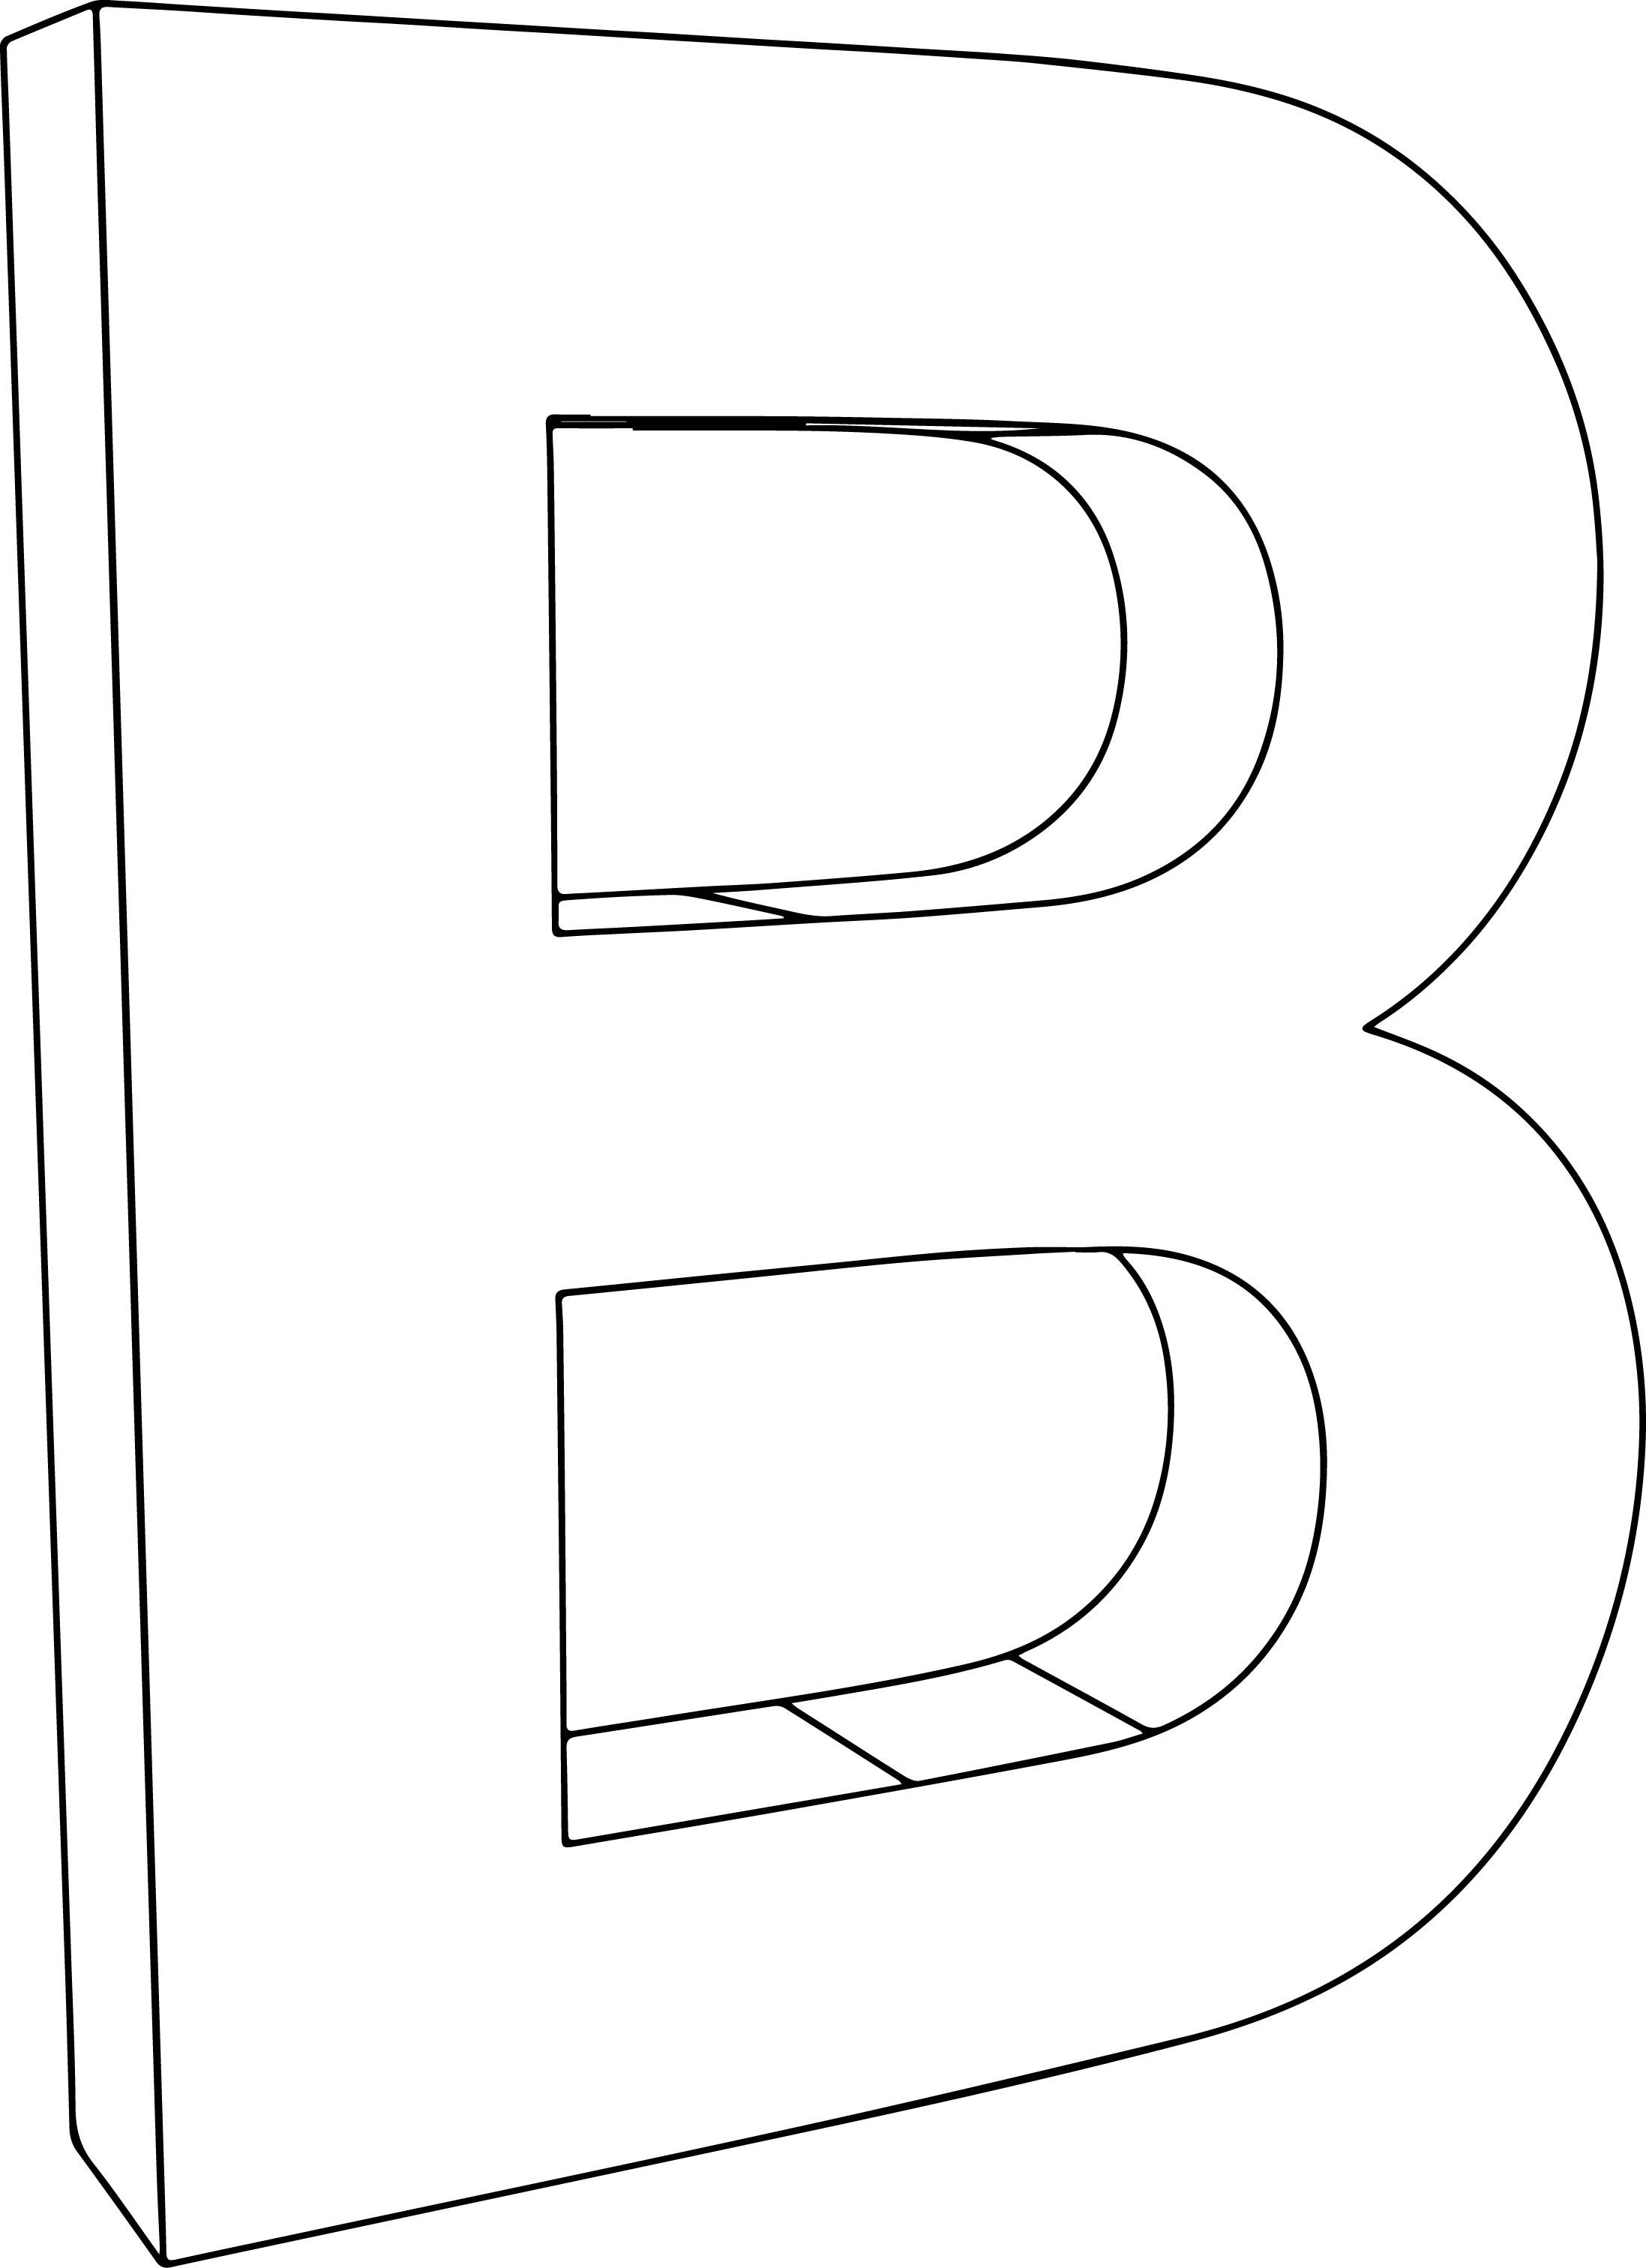 Nice 3d B Character Letter Coloring Page Character Letters School Coloring Pages Coloring Pages